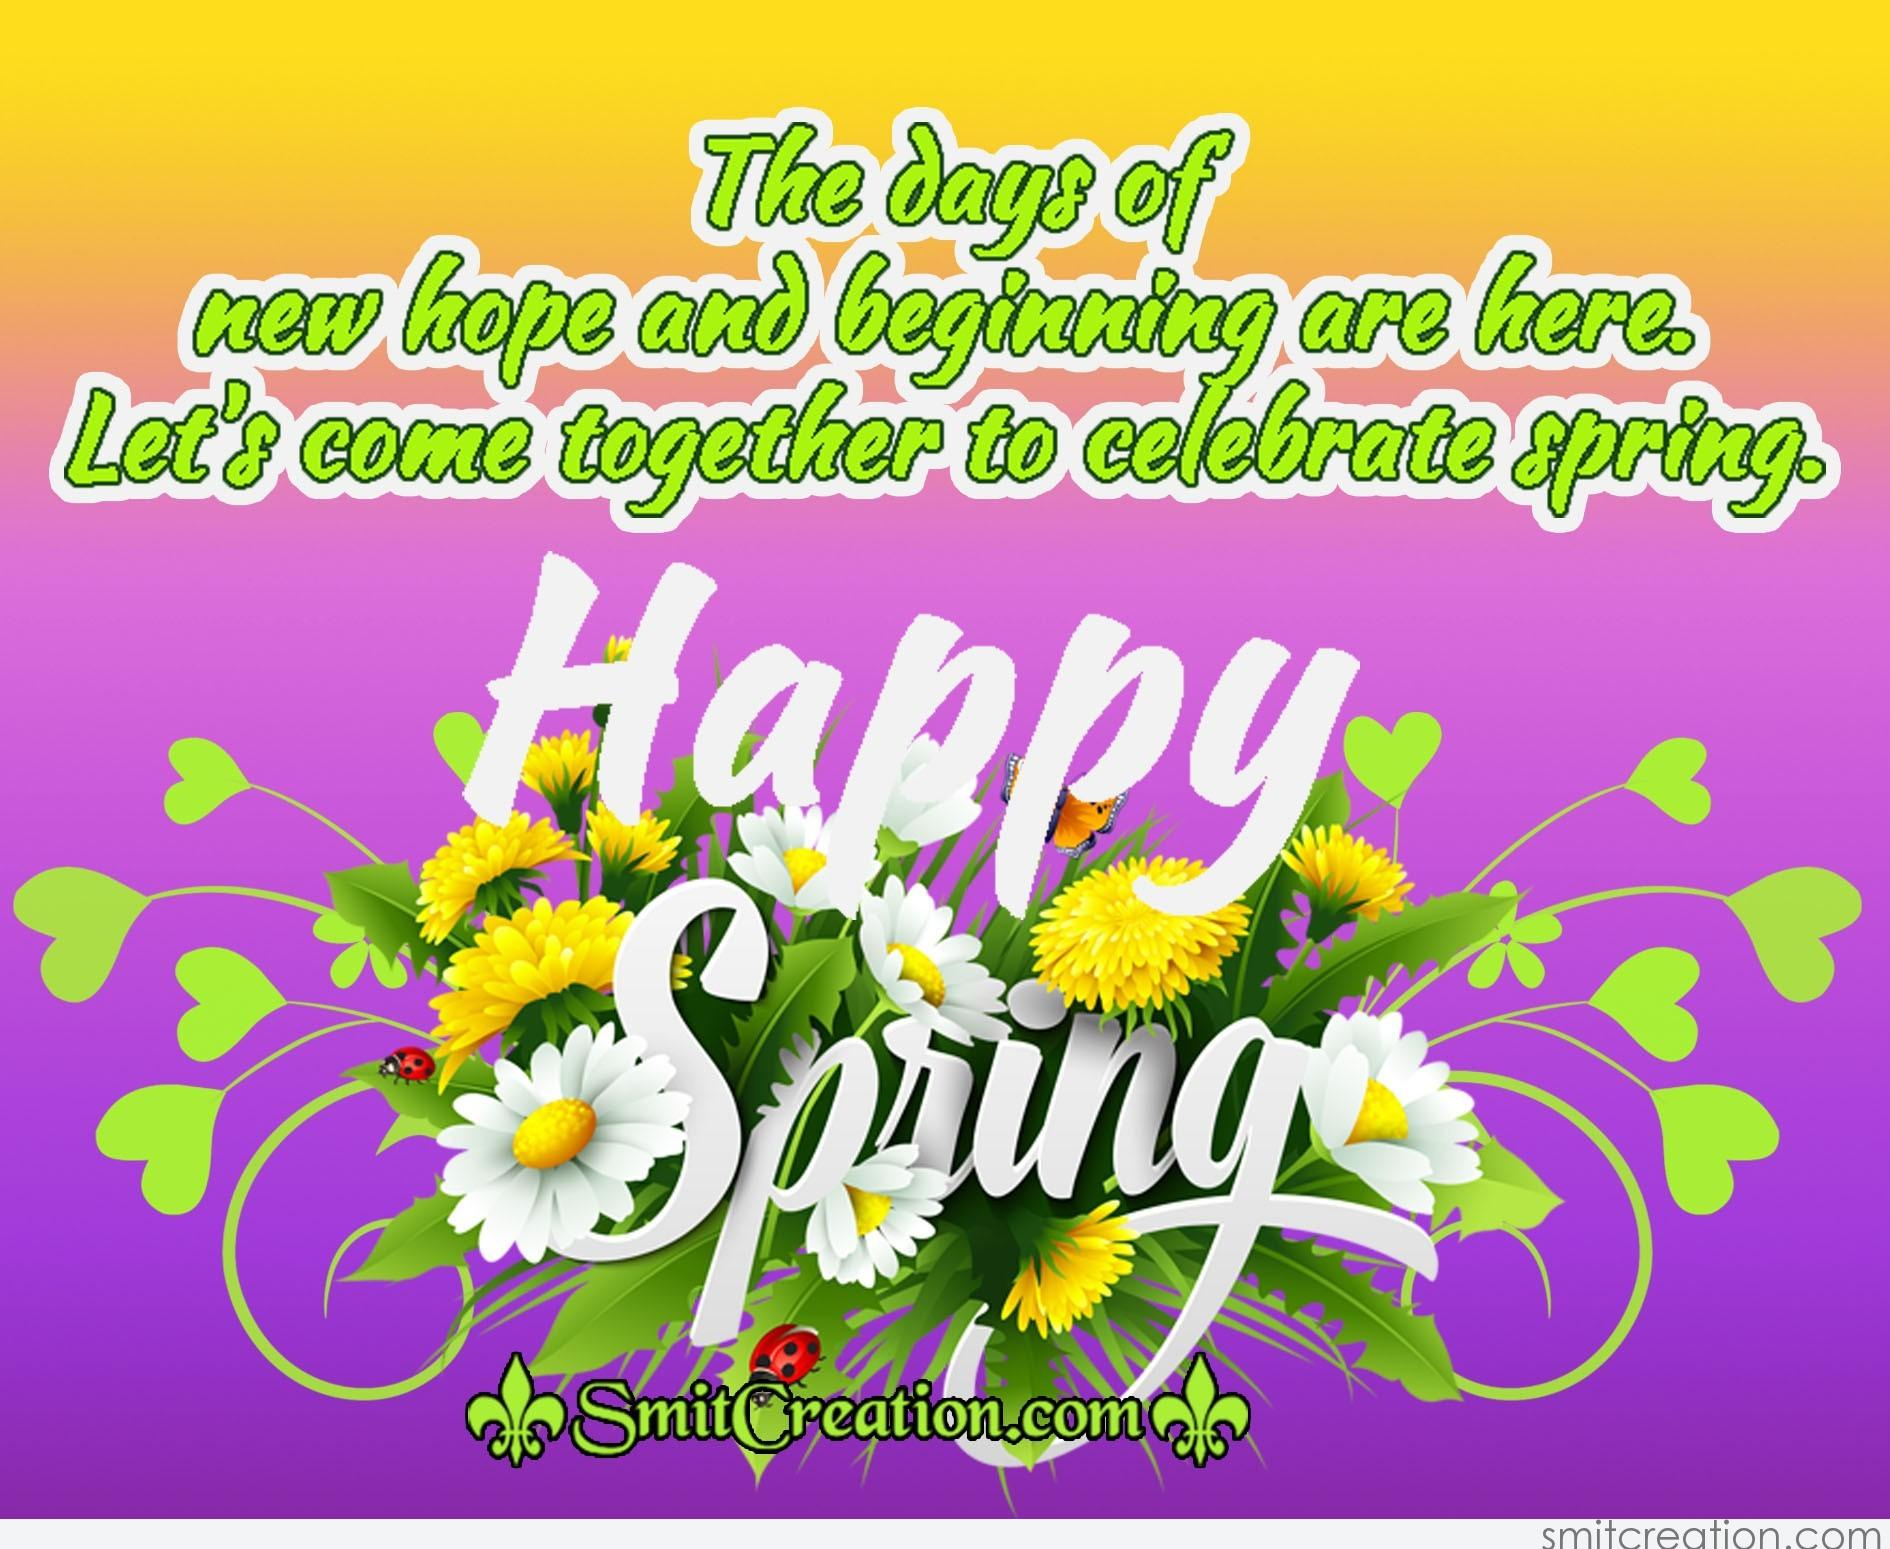 Spring Pictures and Graphics - SmitCreation.com - Page 3